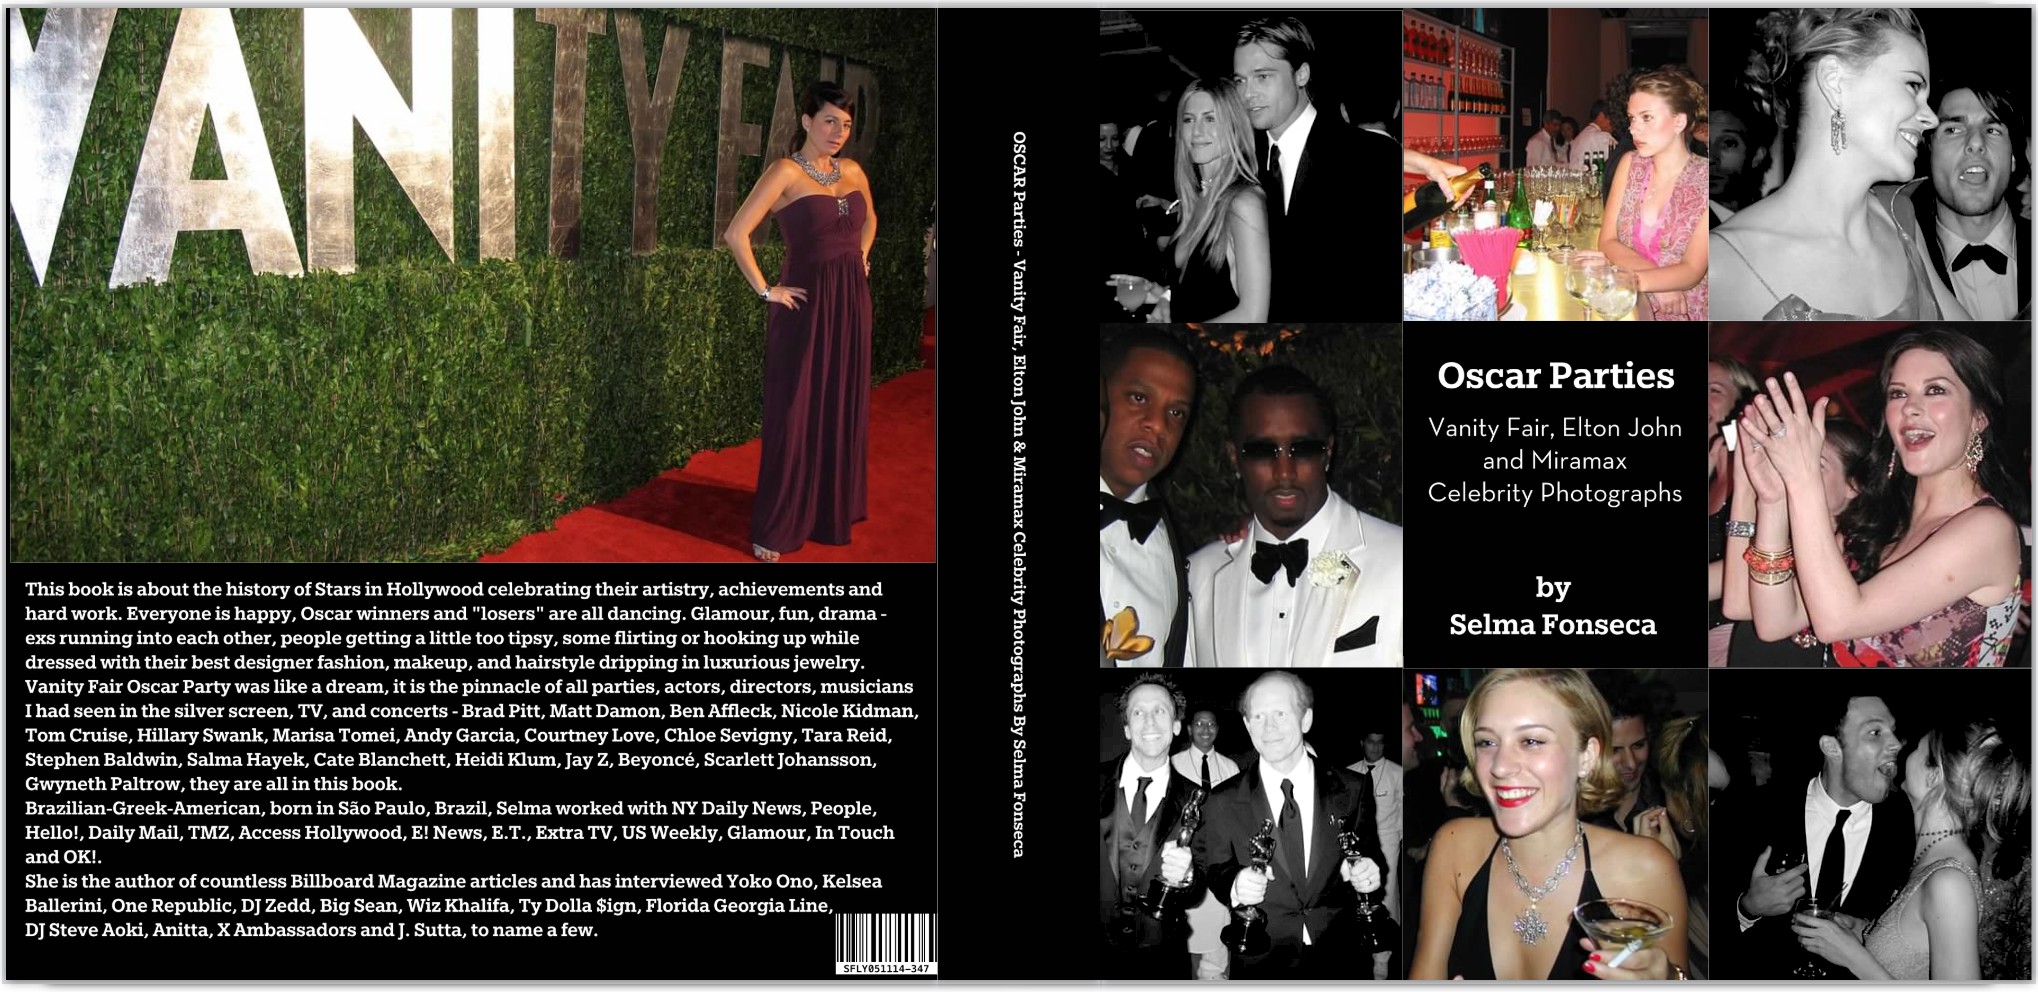 Oscar Parties - Vanity Fair, Elton John and Miramax Celebrity Photographs - by Selma Fonseca  Cover